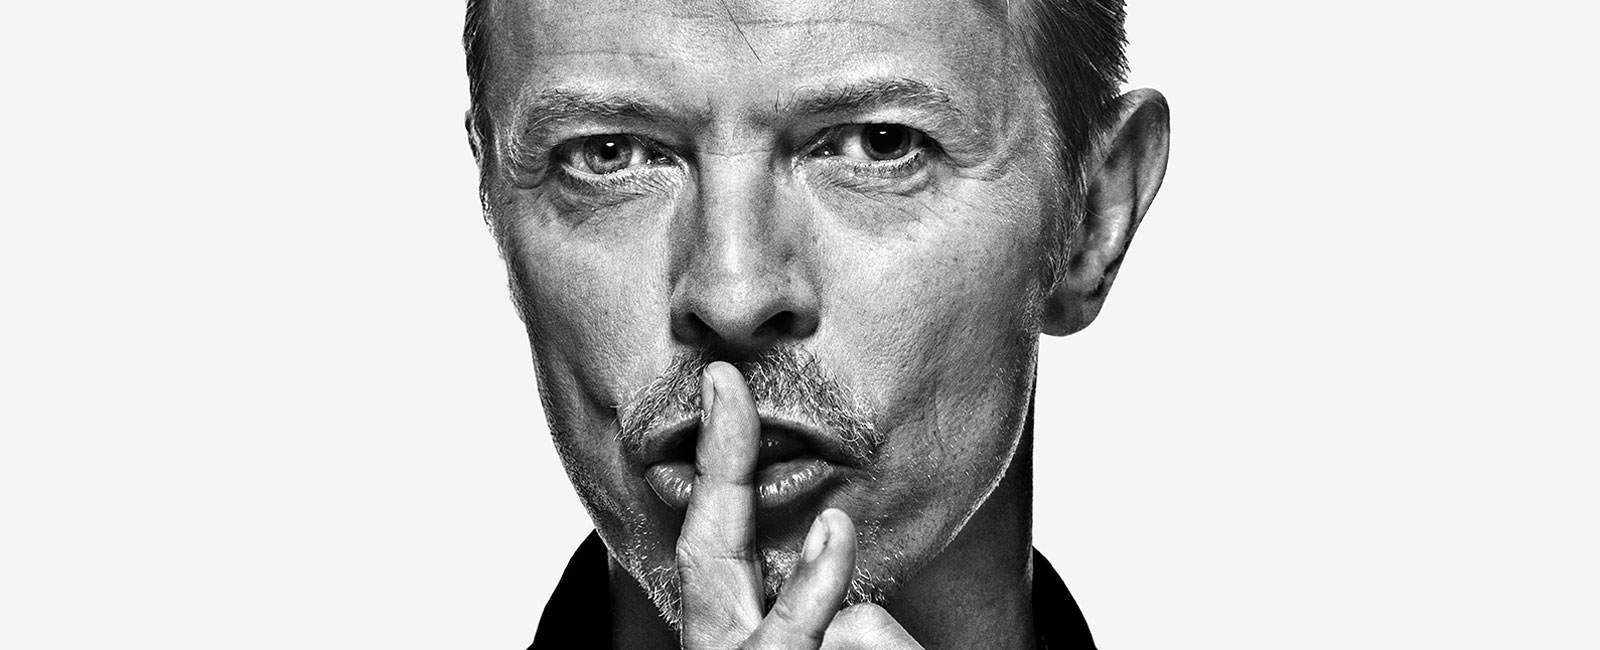 The Institute | »Bowie – The Session« Photographs By Gavin Evans